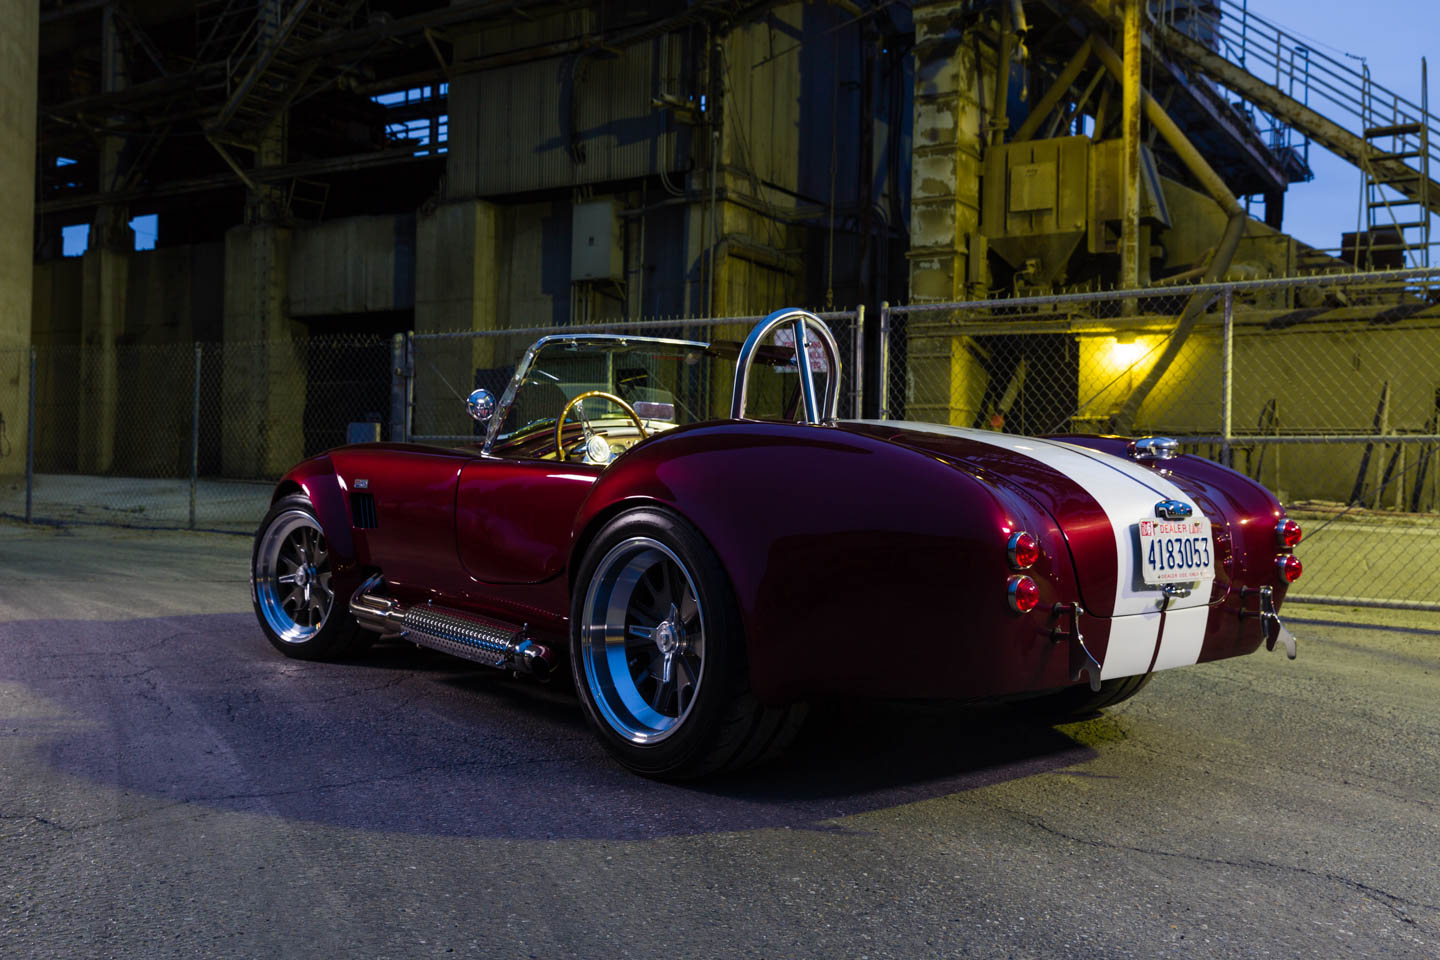 Candy Red Shelby Cobra outside a factory